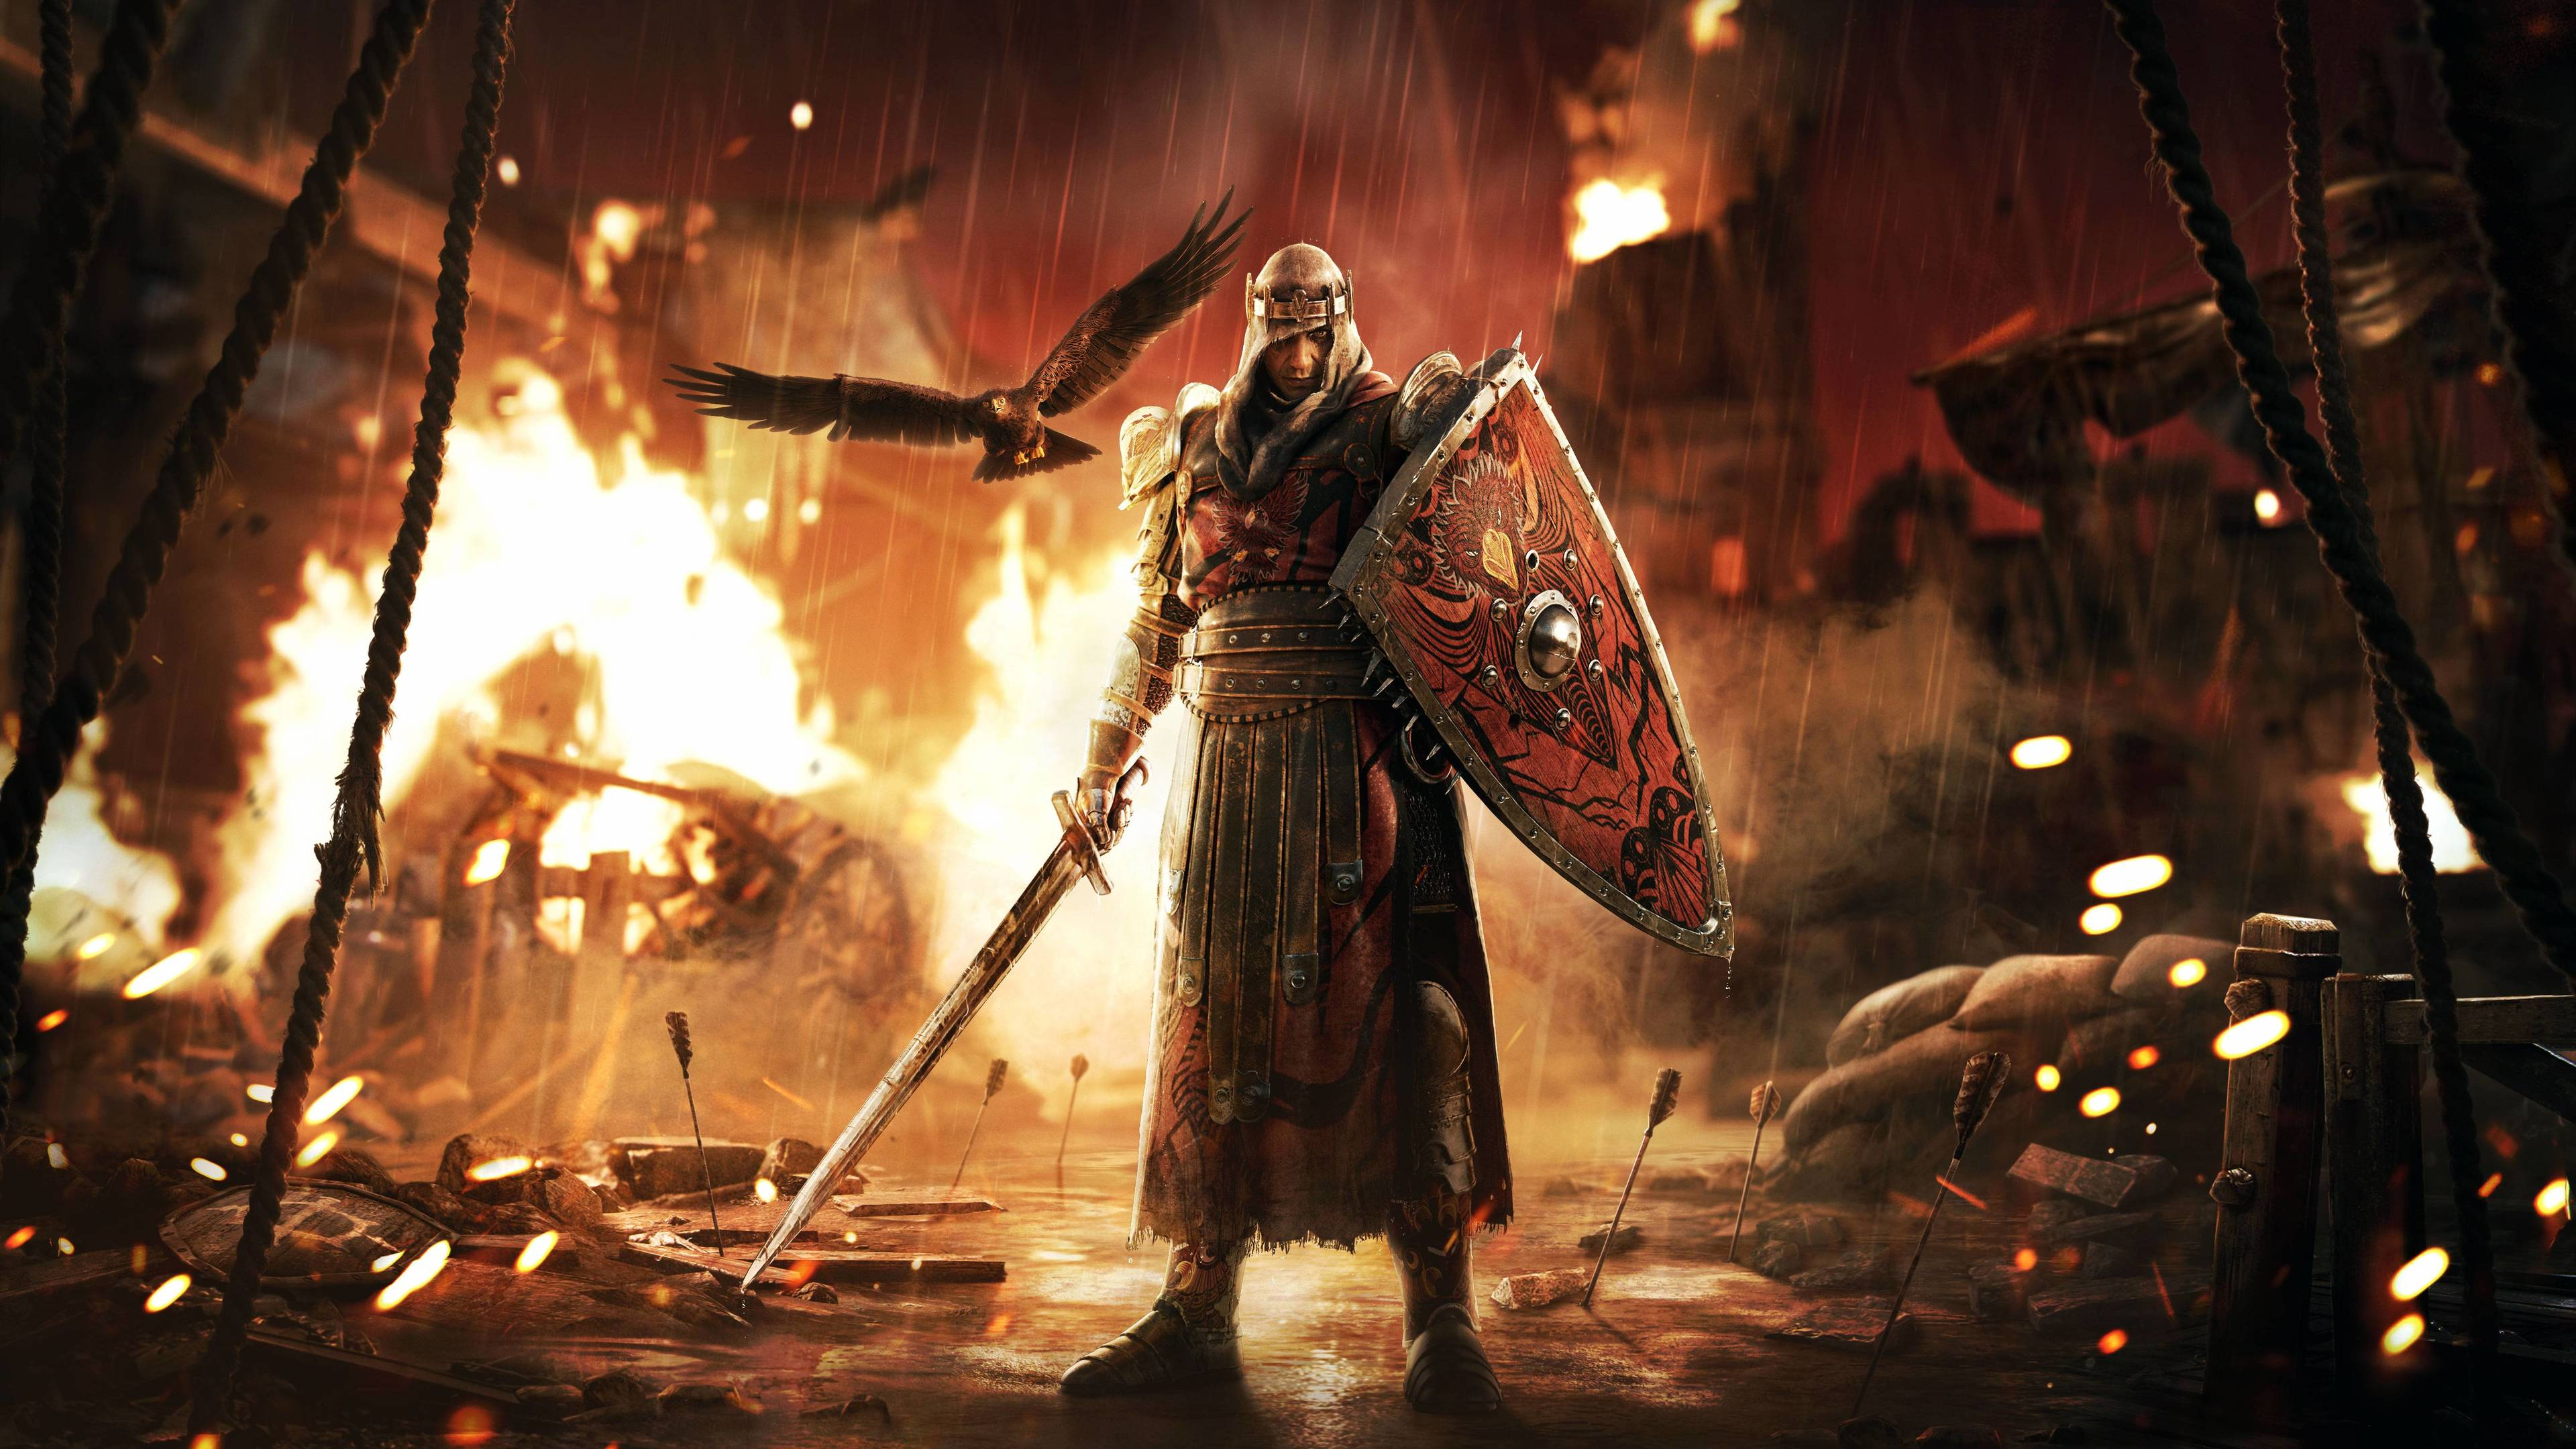 for honor 2019 new 4k 1554244326 - For Honor 2019 New 4k - xbox games wallpapers, ps games wallpapers, pc games wallpapers, hd-wallpapers, games wallpapers, for honor wallpapers, 5k wallpapers, 4k-wallpapers, 2019 games wallpapers